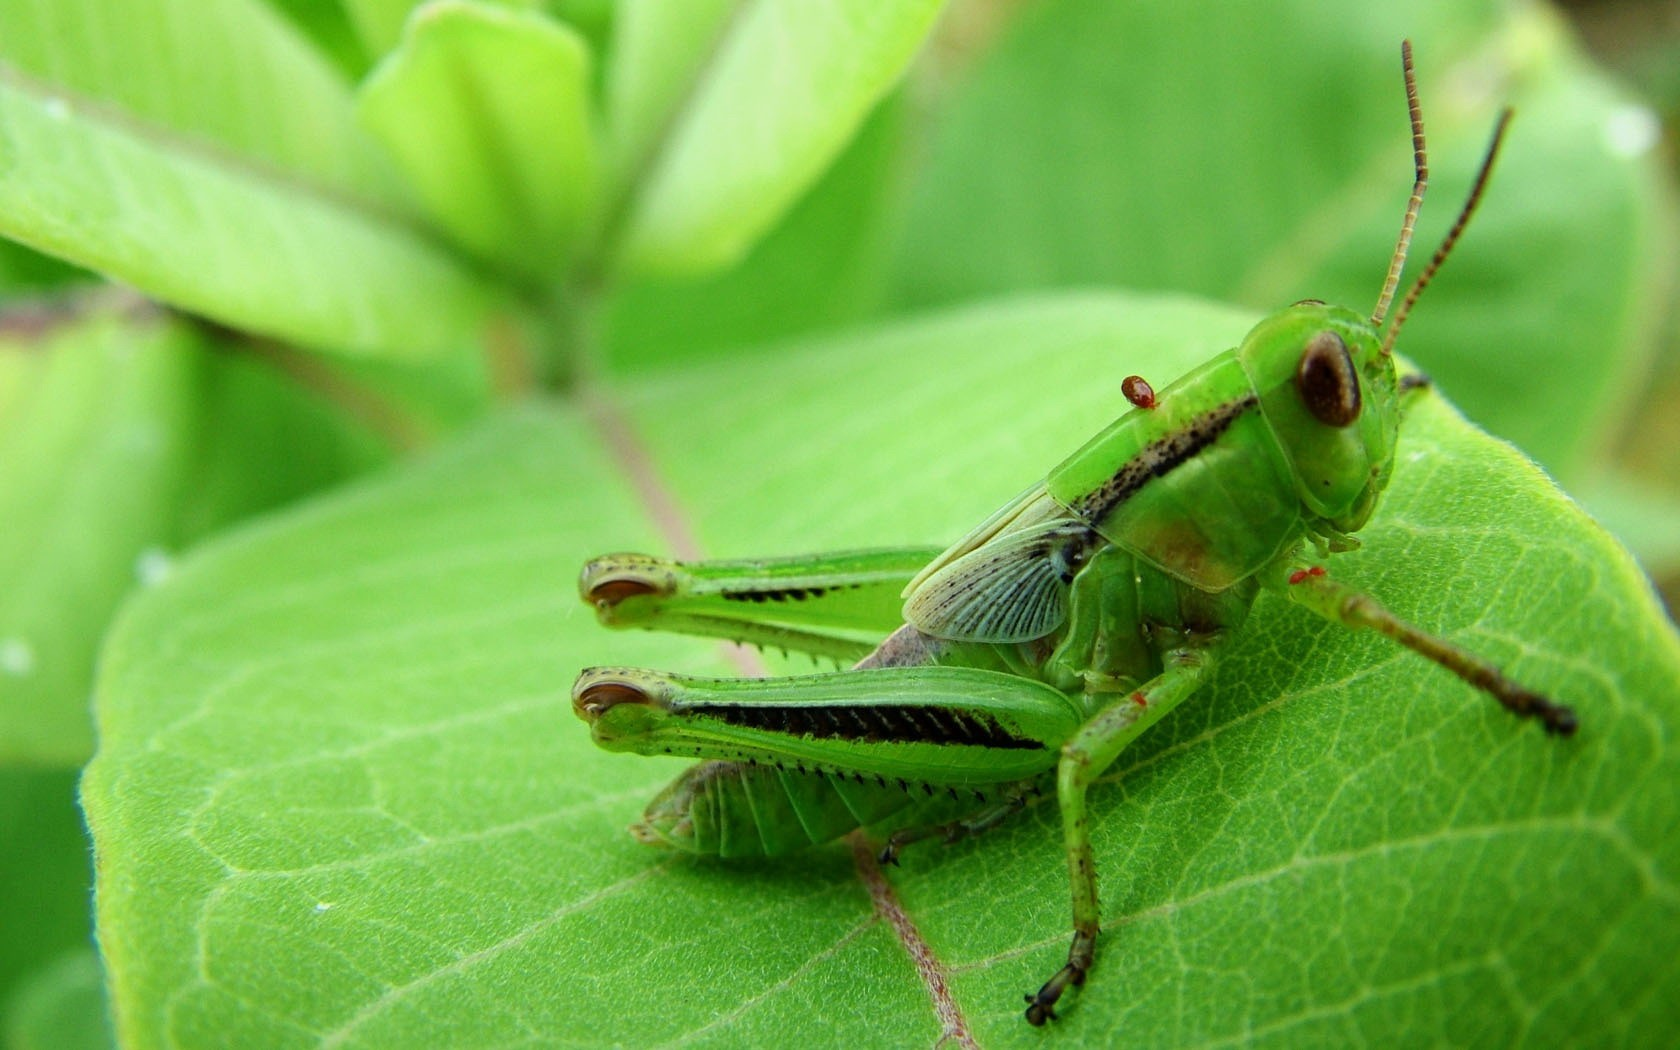 Green nature insects grasshopper HD Wallpaper